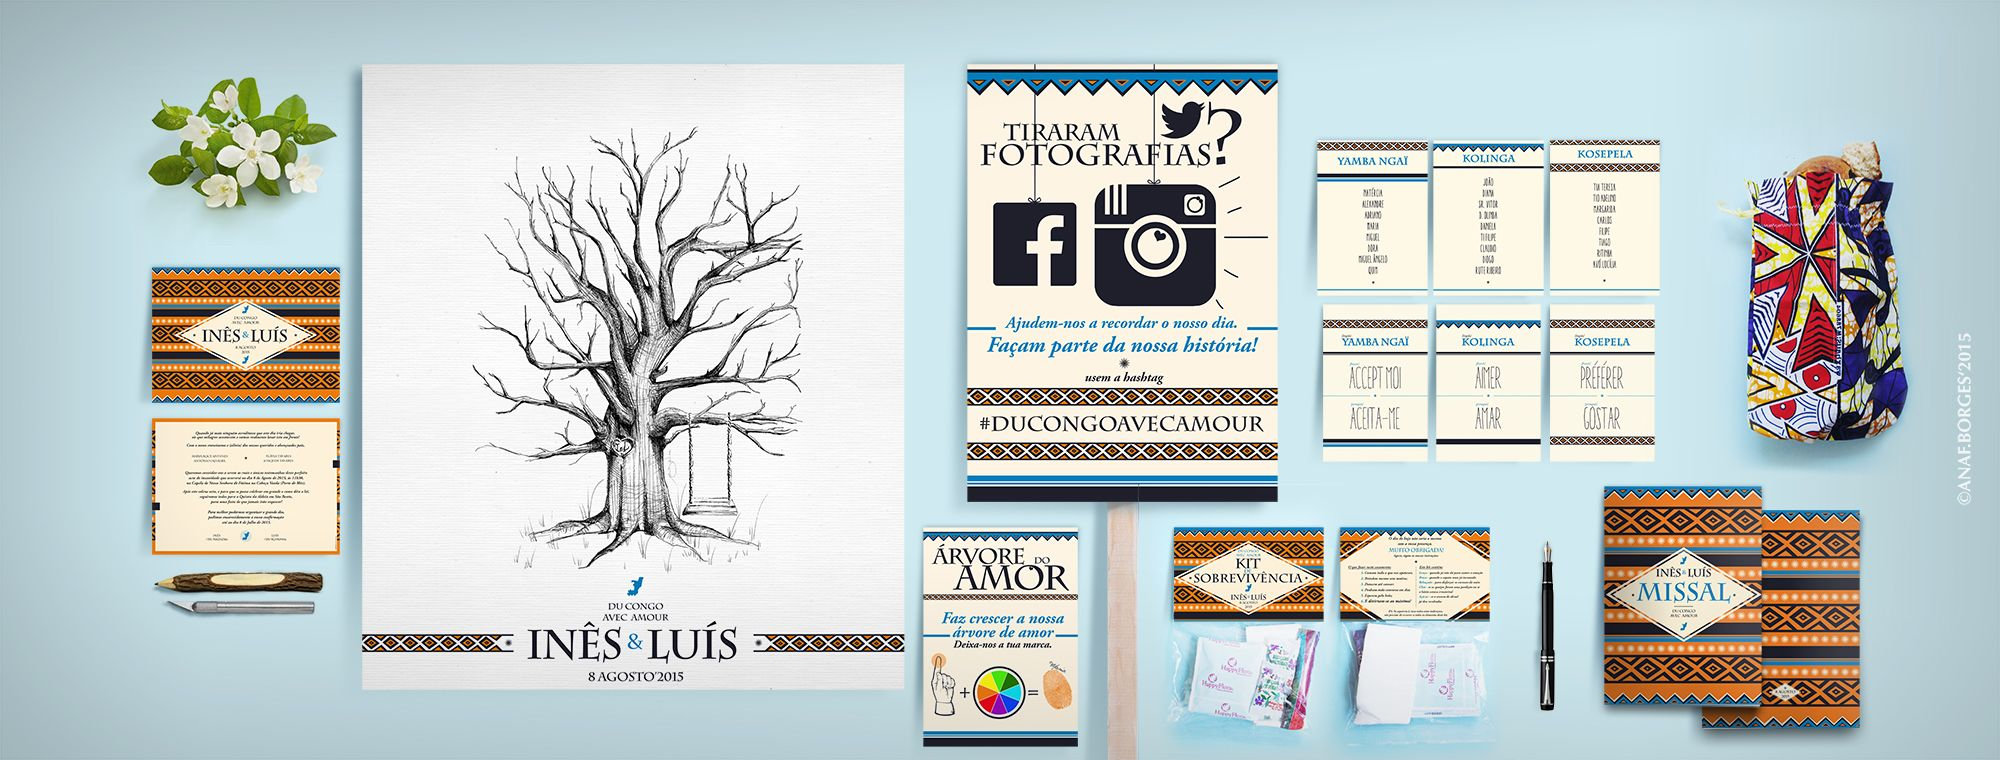 ~ Wedding Graphic Identity ~  for Inês & Luís. #ducongoavecamour